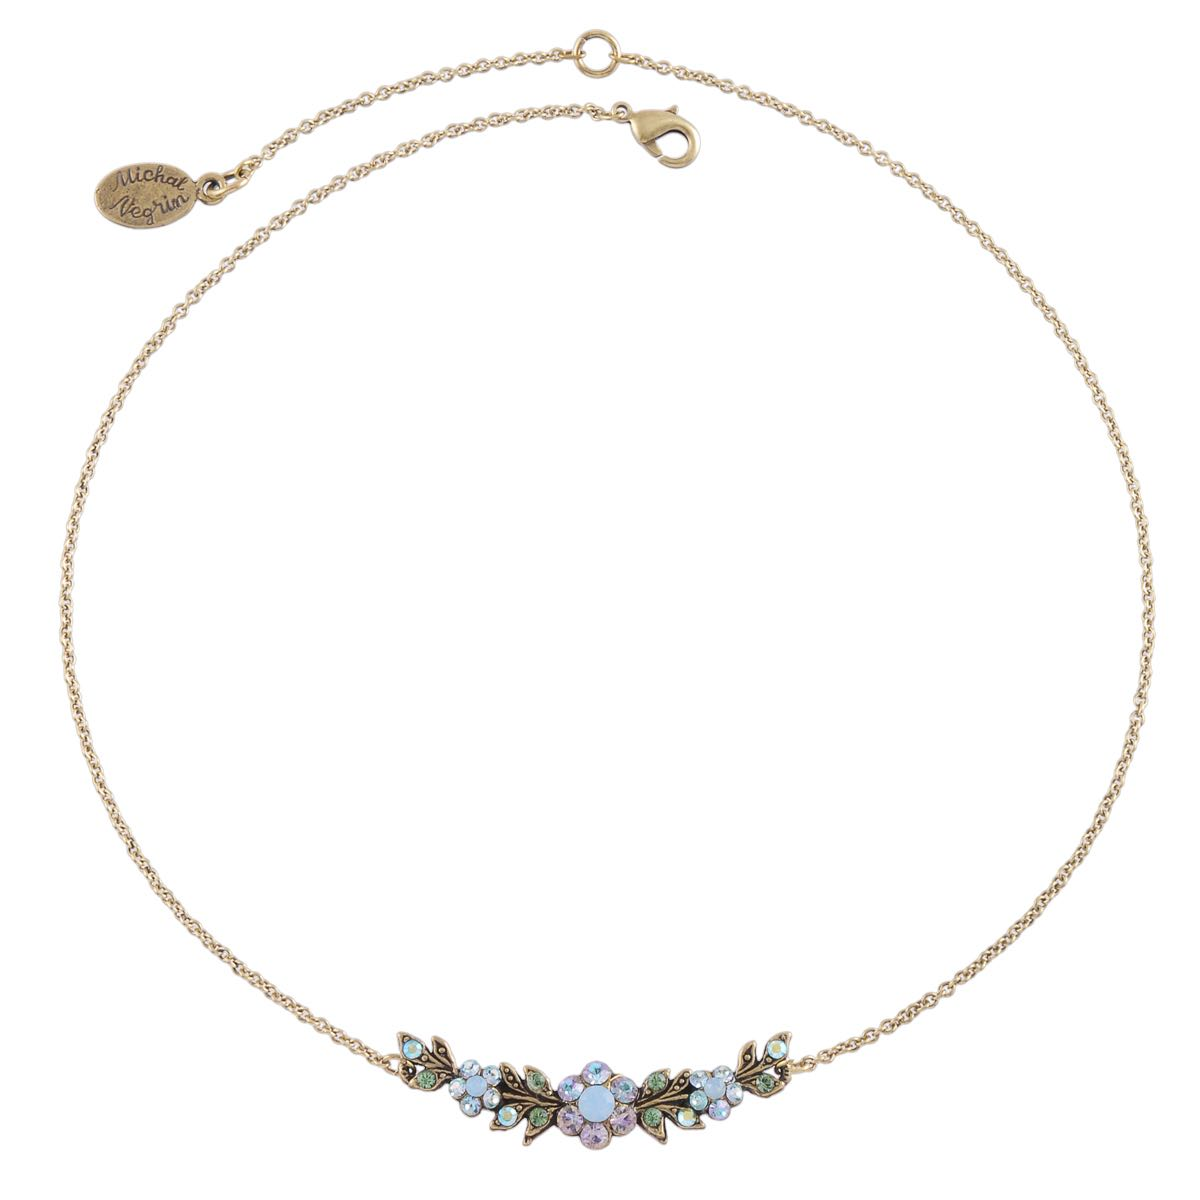 Michal negrin Floral Necklace blue